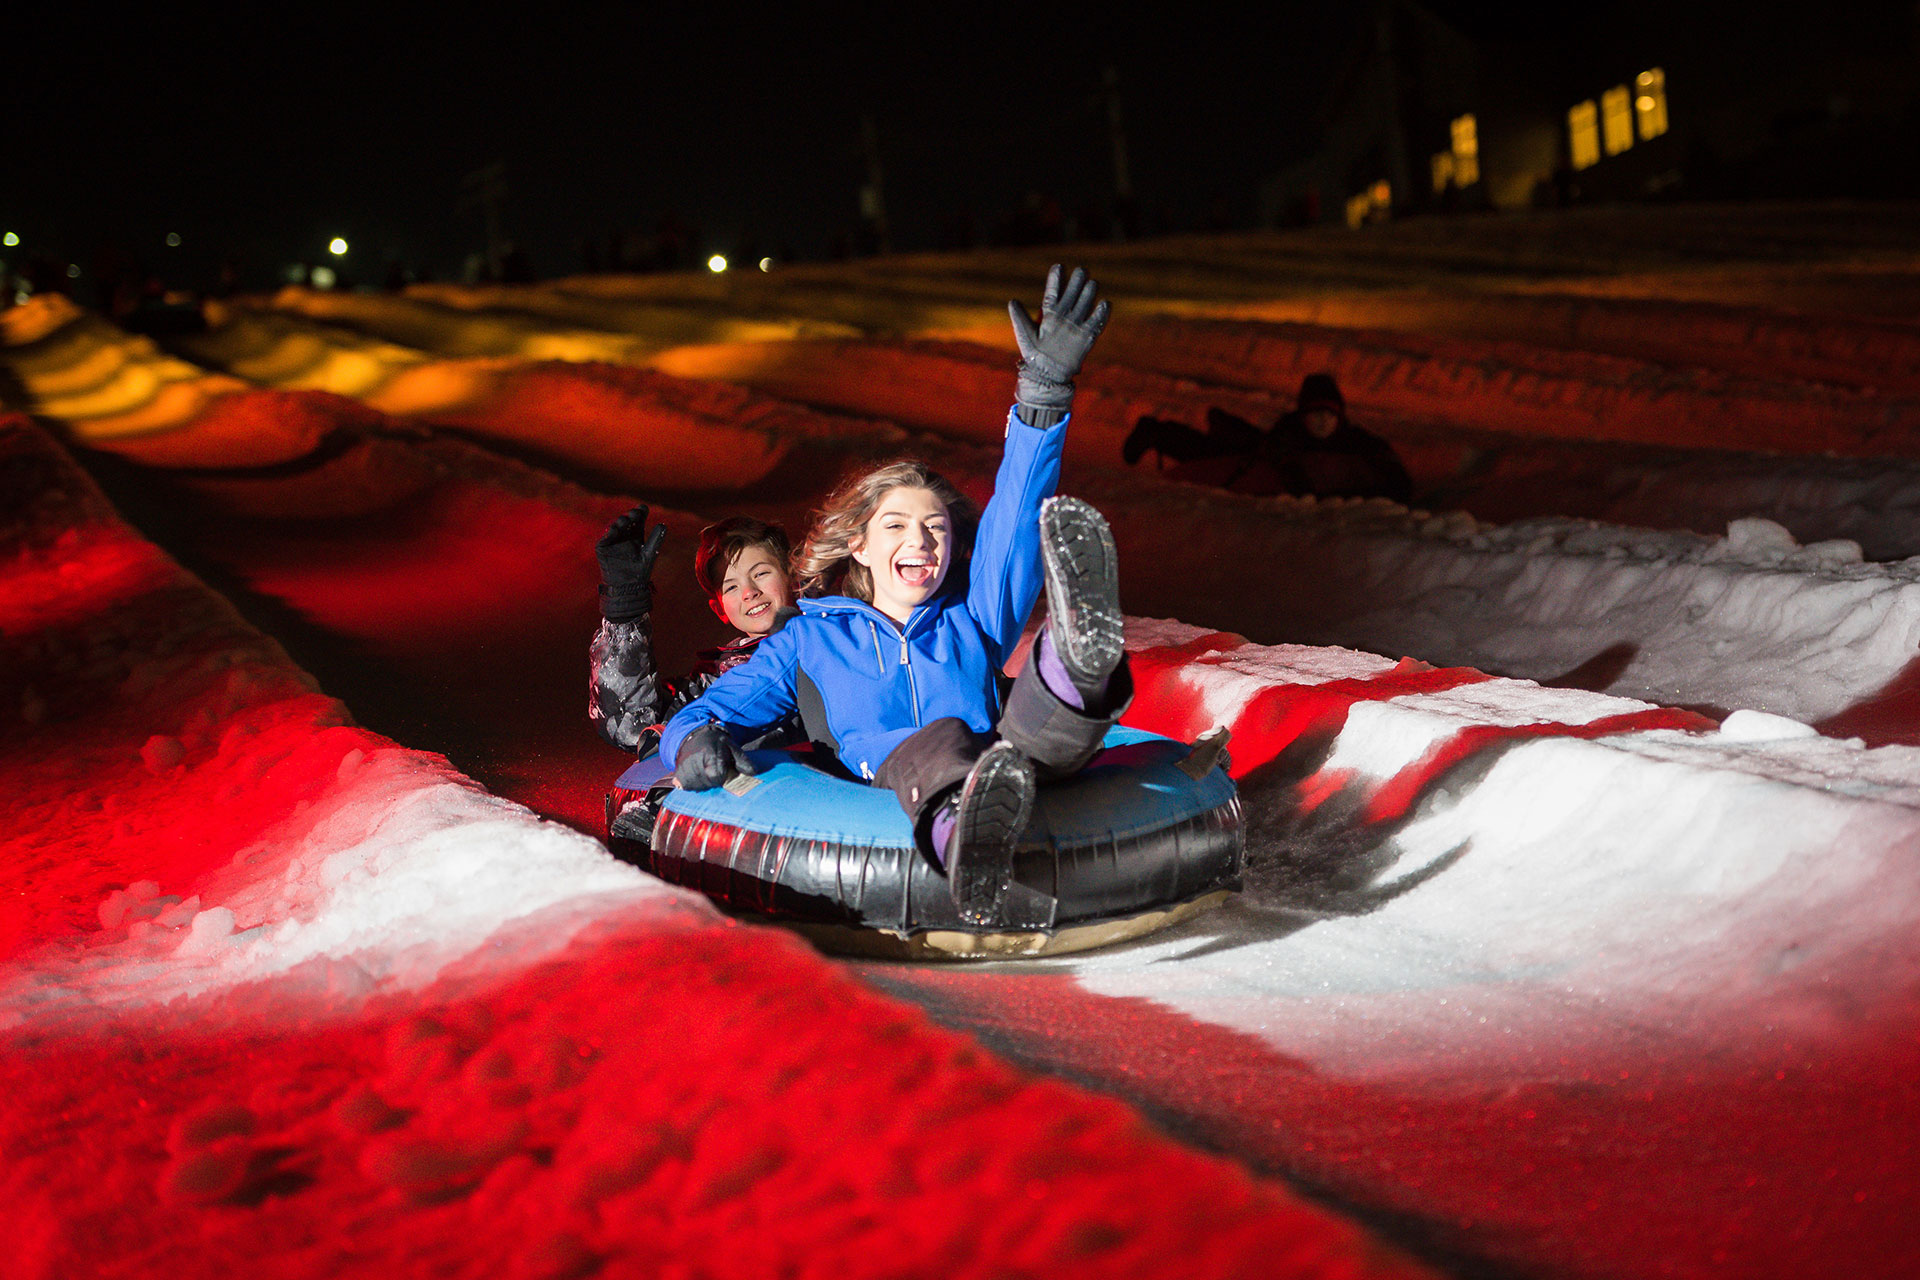 Snow Tubing at Camelback Mountain Resort in the Poconos